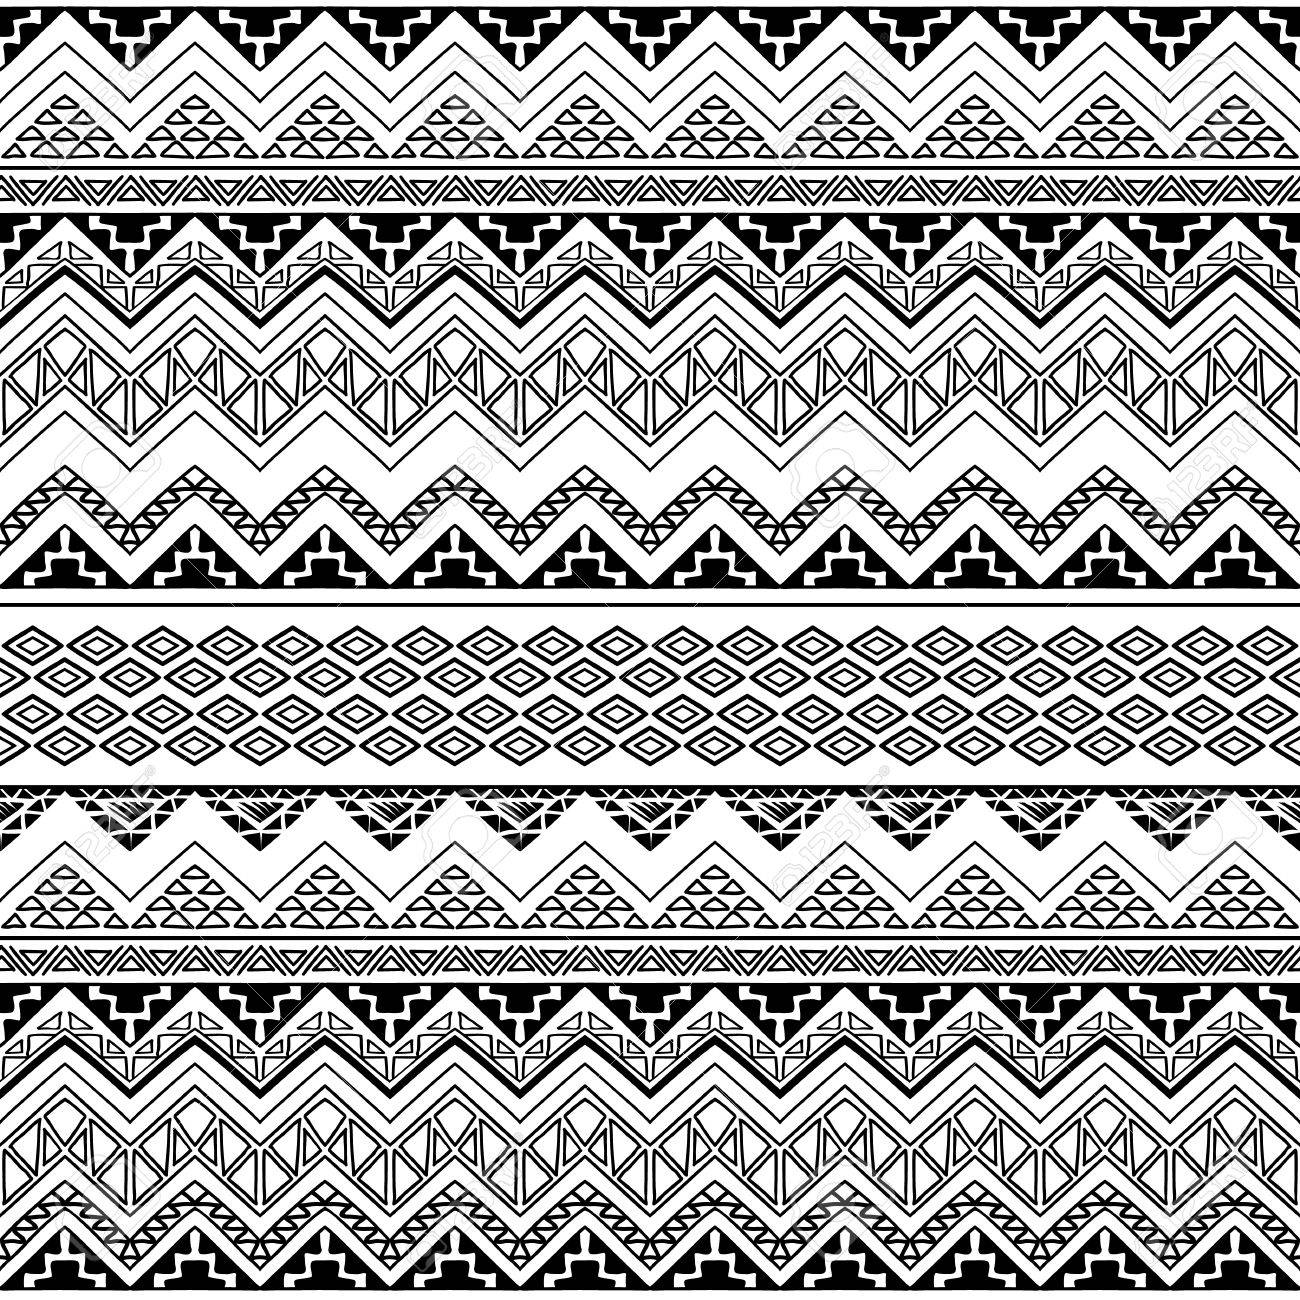 Black And White Seamless Boho Chic Style Pattern With Tribal Aztec Ornament Modern Folk Wallpaper Hand Drawn